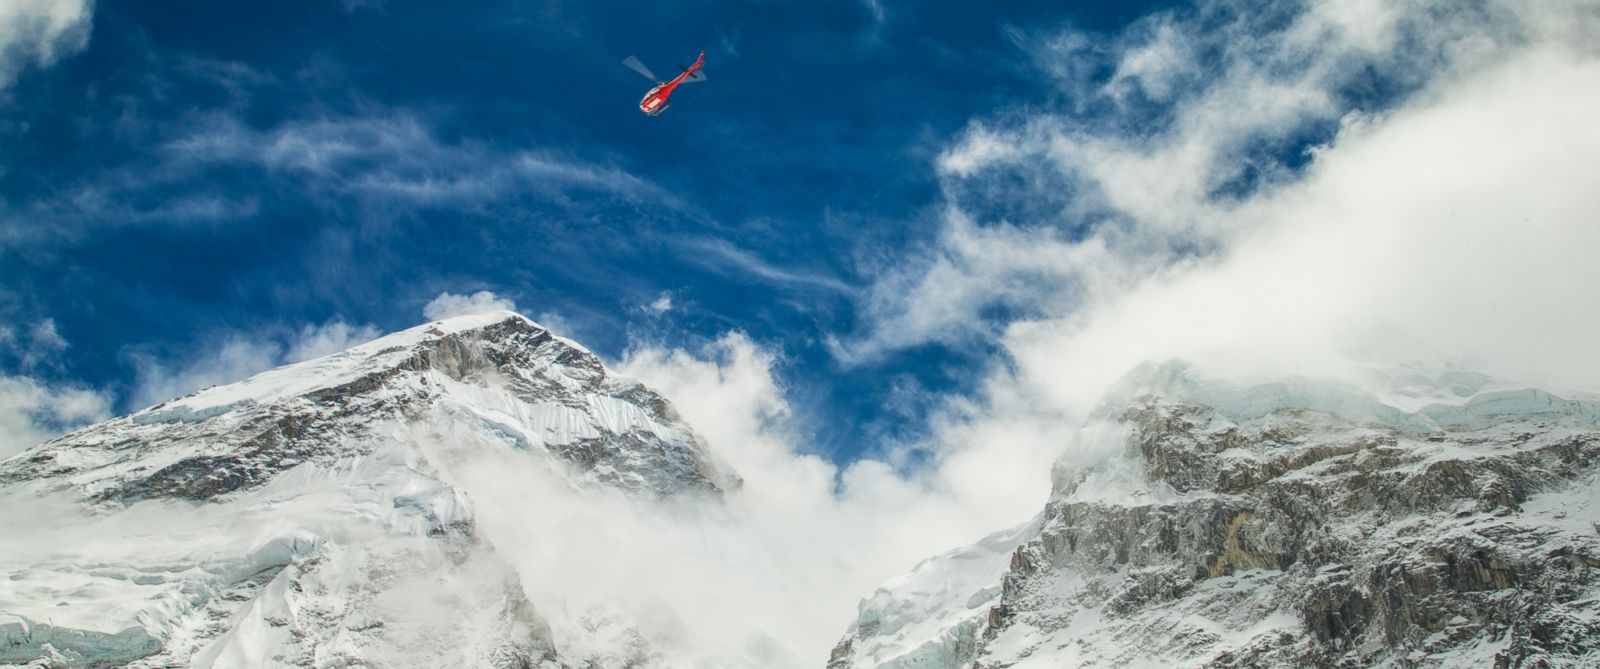 earthquake crews race to rescue climbers on mount everest photo a photographer for 6 summits challenge an international team of climbers documented